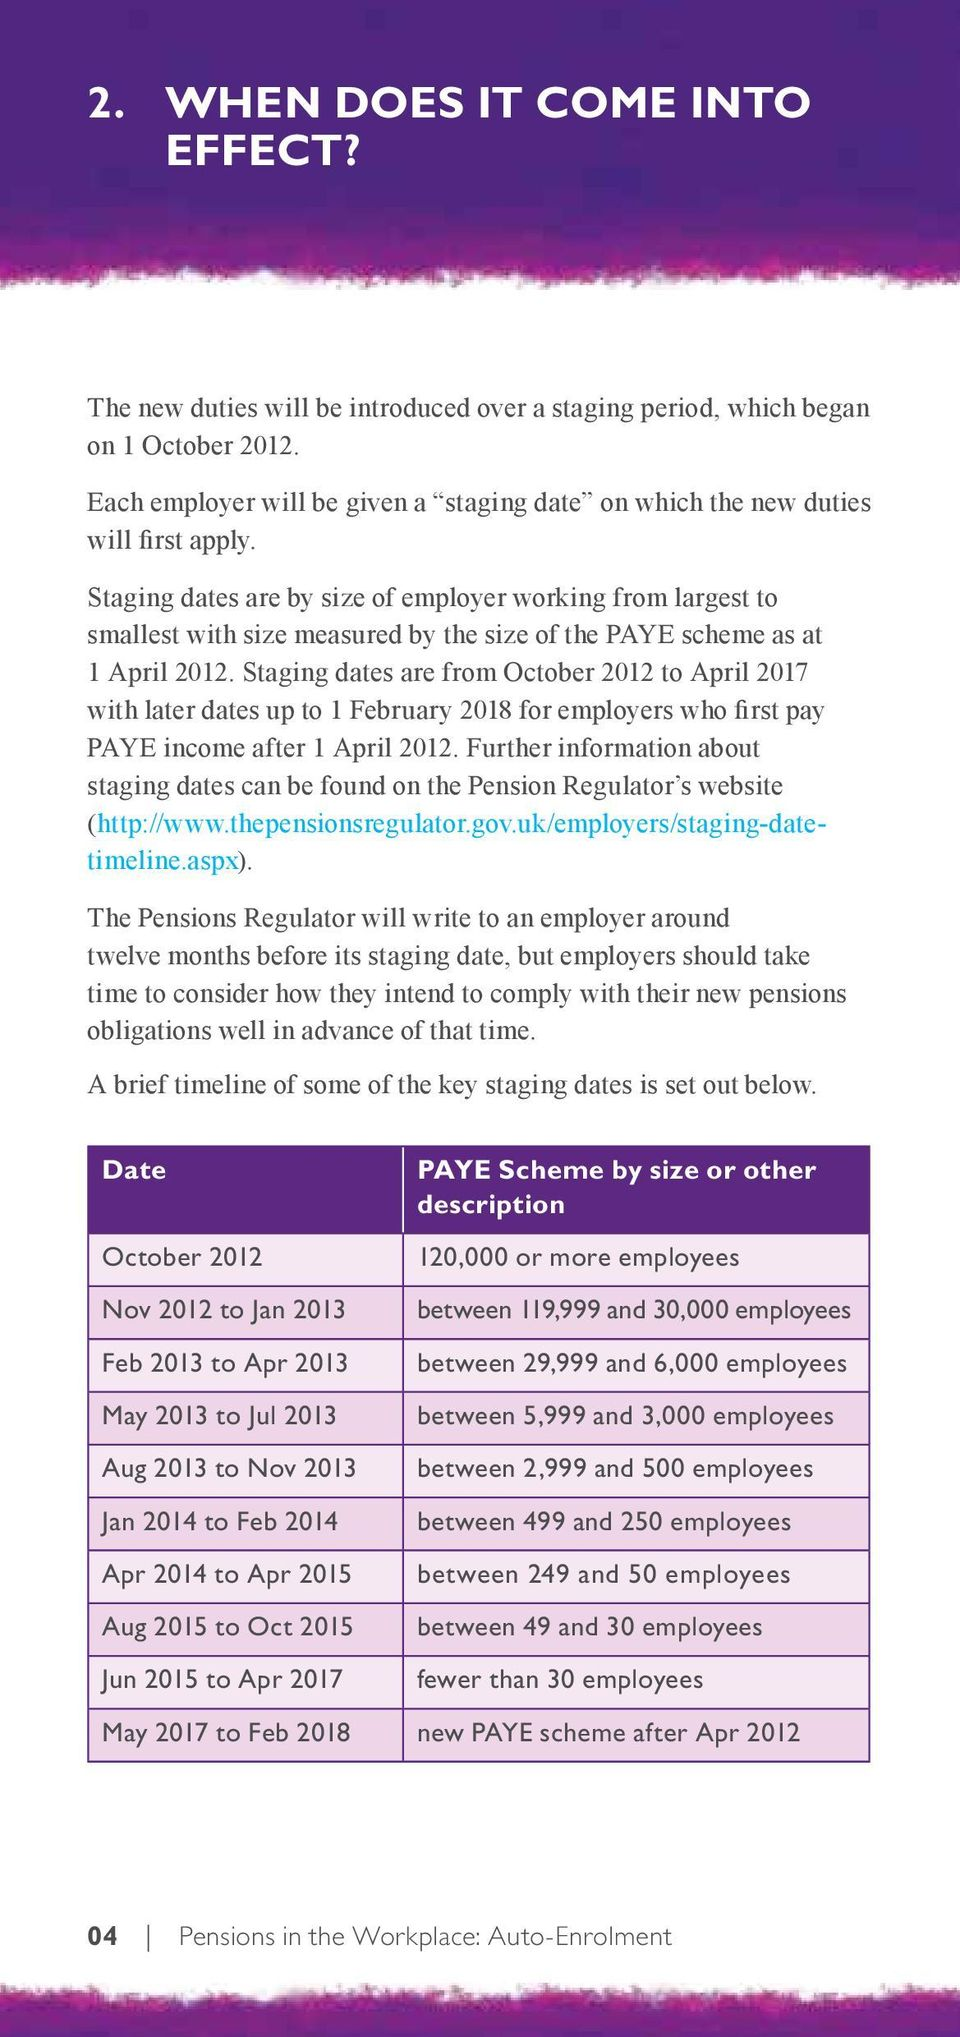 Staging dates are by size of employer working from largest to smallest with size measured by the size of the PAYE scheme as at 1 April 2012.